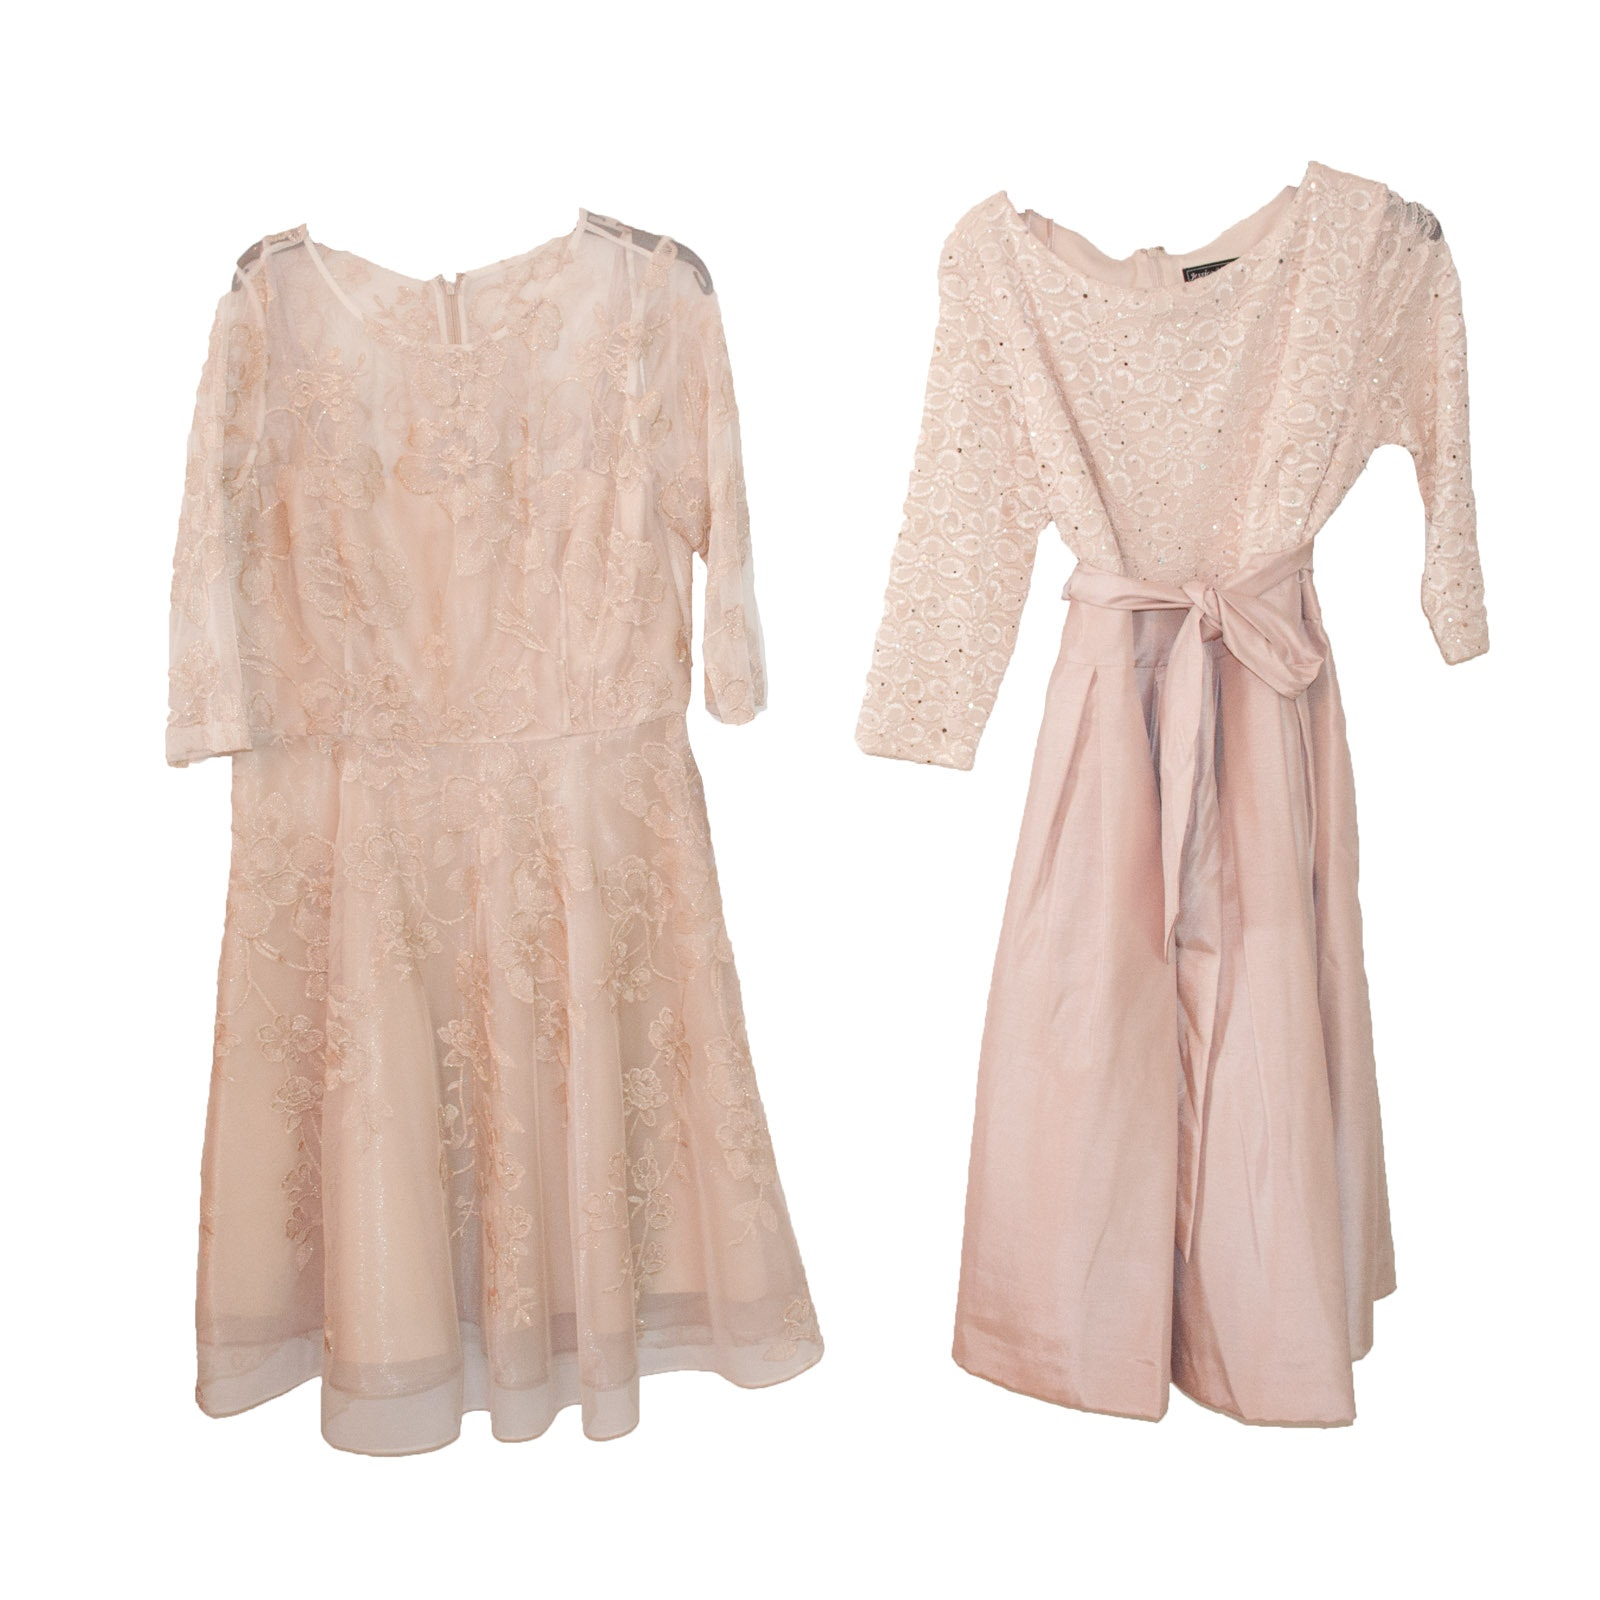 Tahari and Jessica Howard Dresses